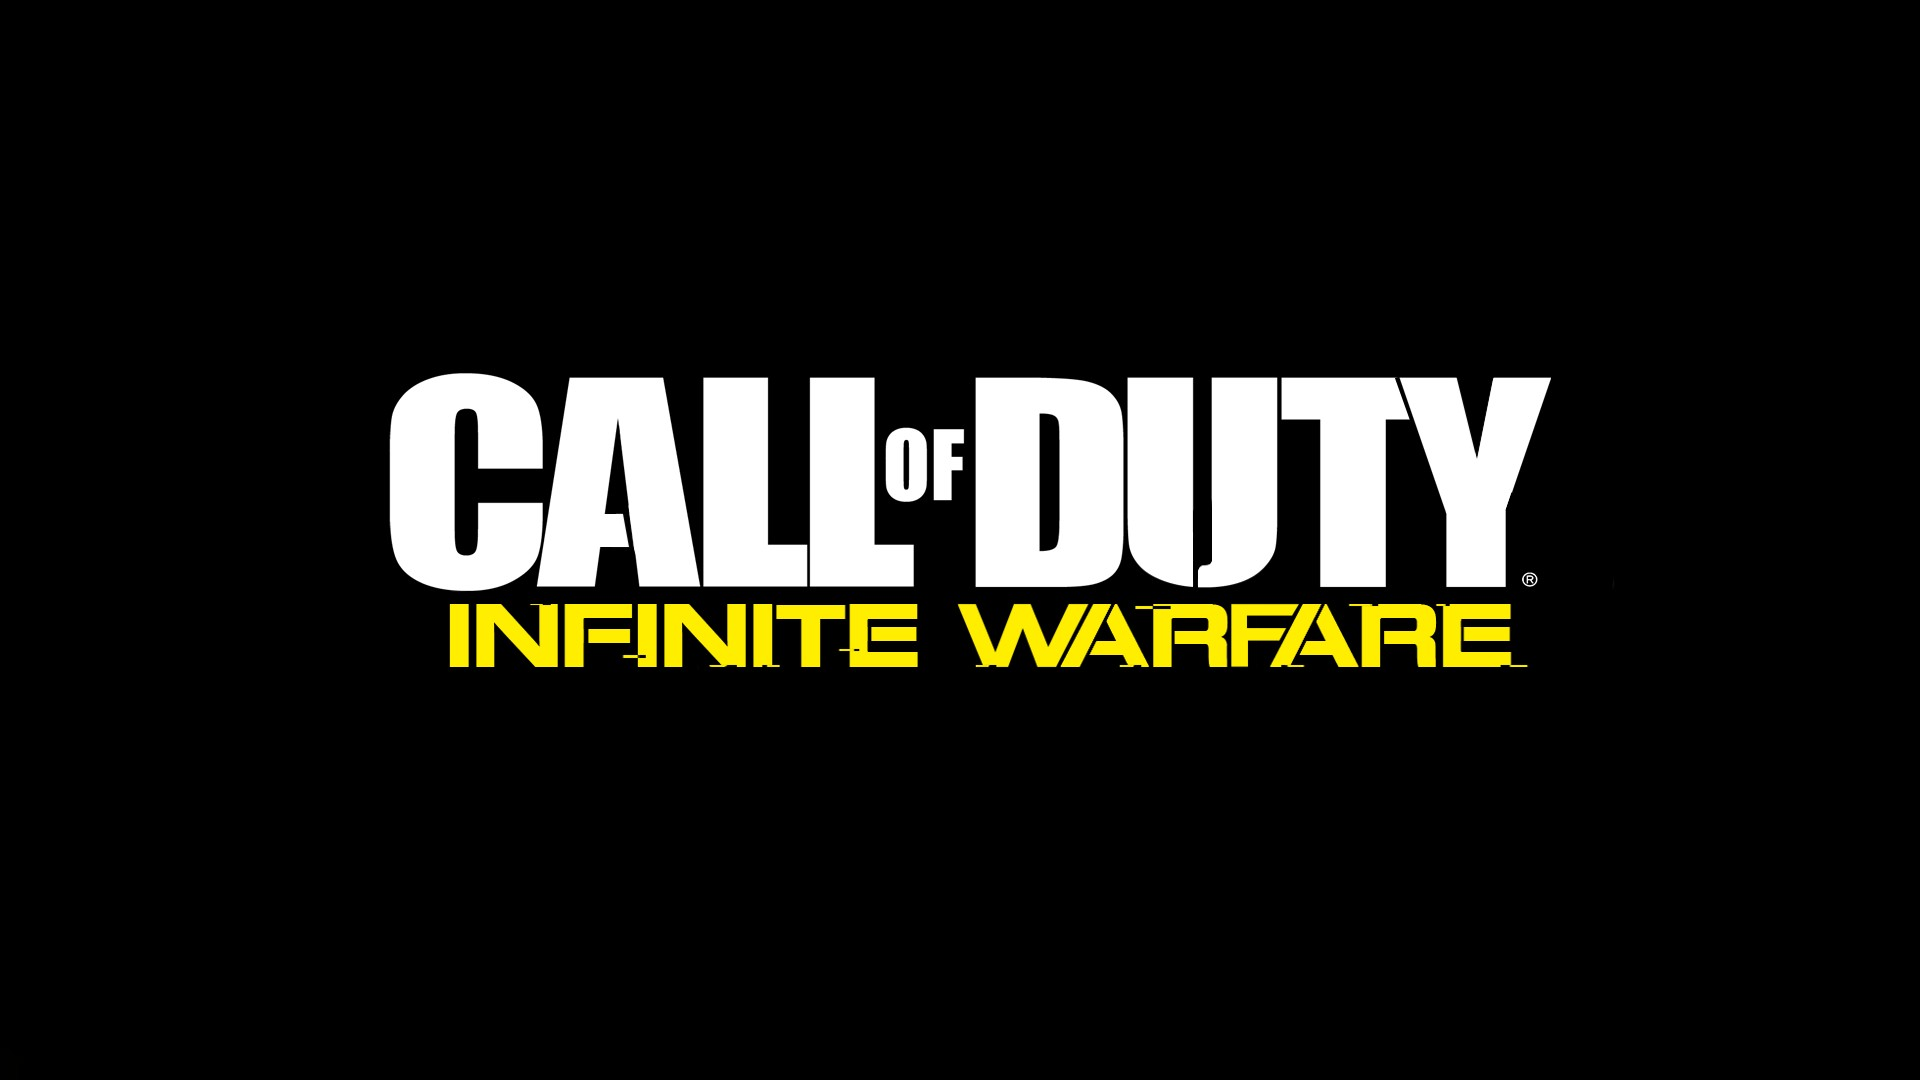 Wallpaper Dinding Full Paling Modern Untuk 47 Call Of Duty Infinite Warfare Hd Wallpapers Of Wallpaper Dinding Full Paling Baik Untuk Wallpaper Download Options Wake forest University